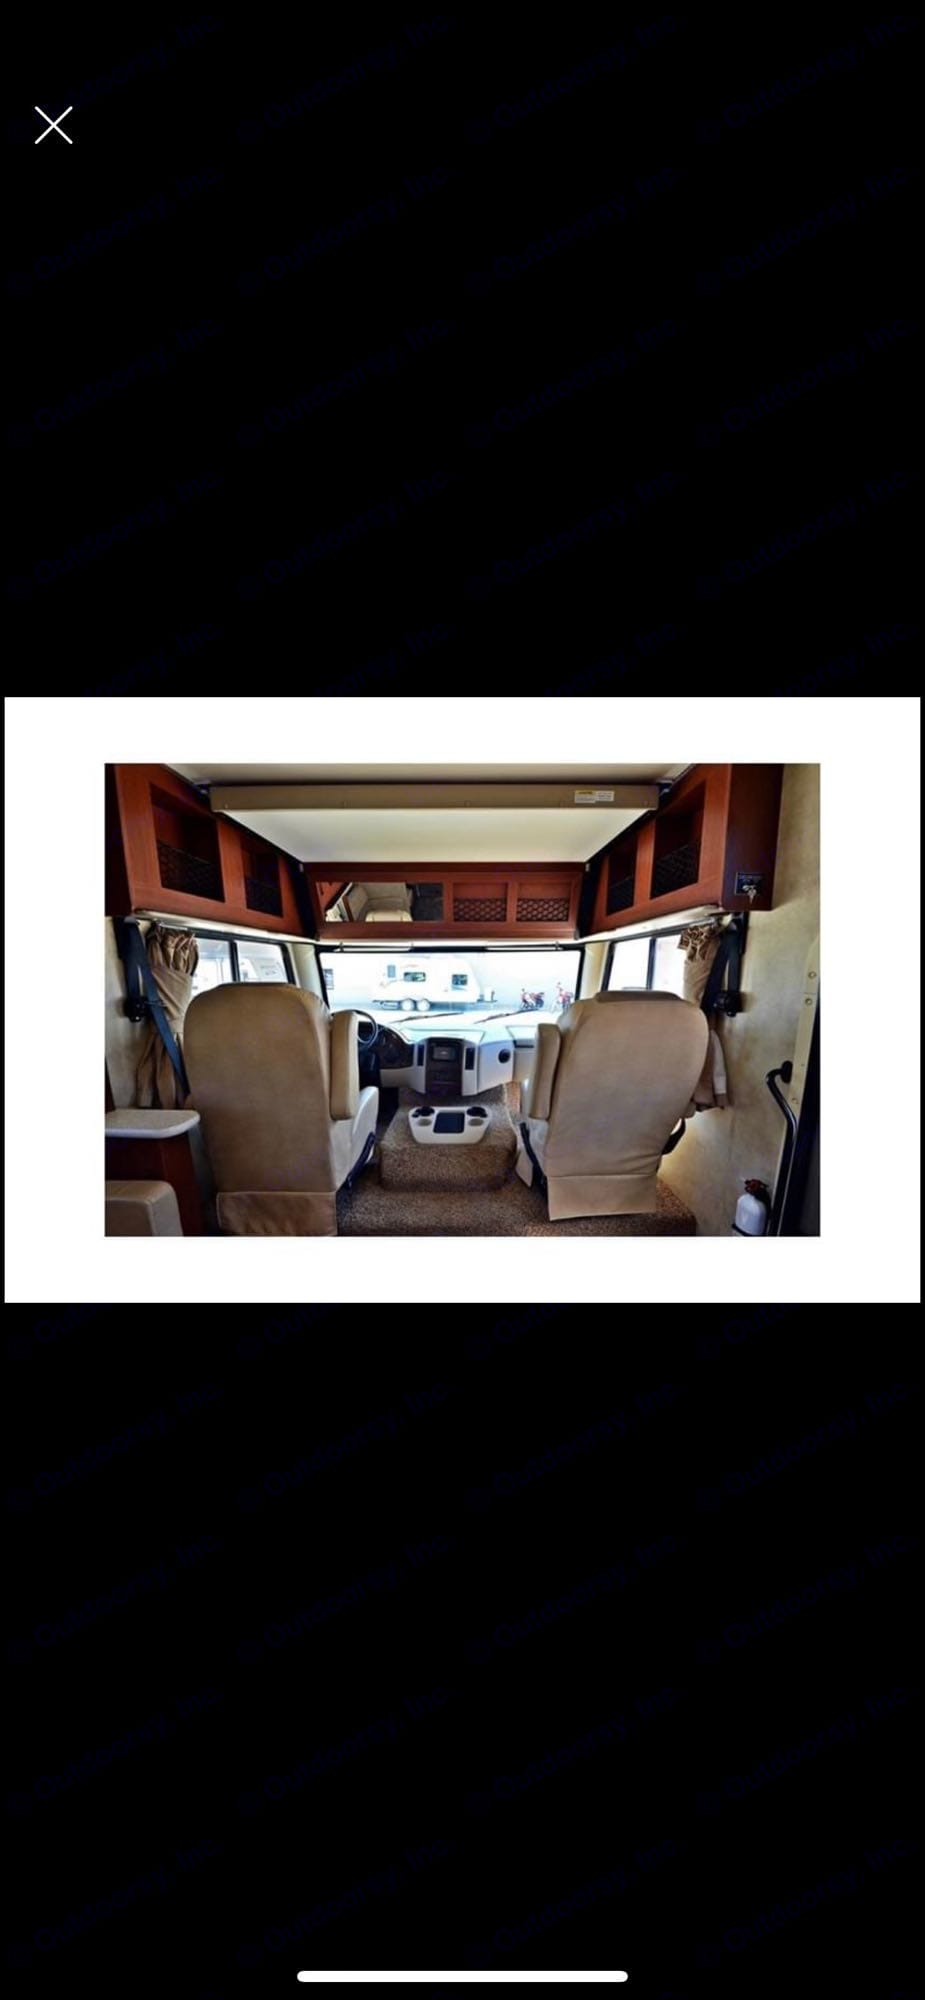 Driver and Passenger seats with overhead bed. Thor Motor Coach A.C.E 2013